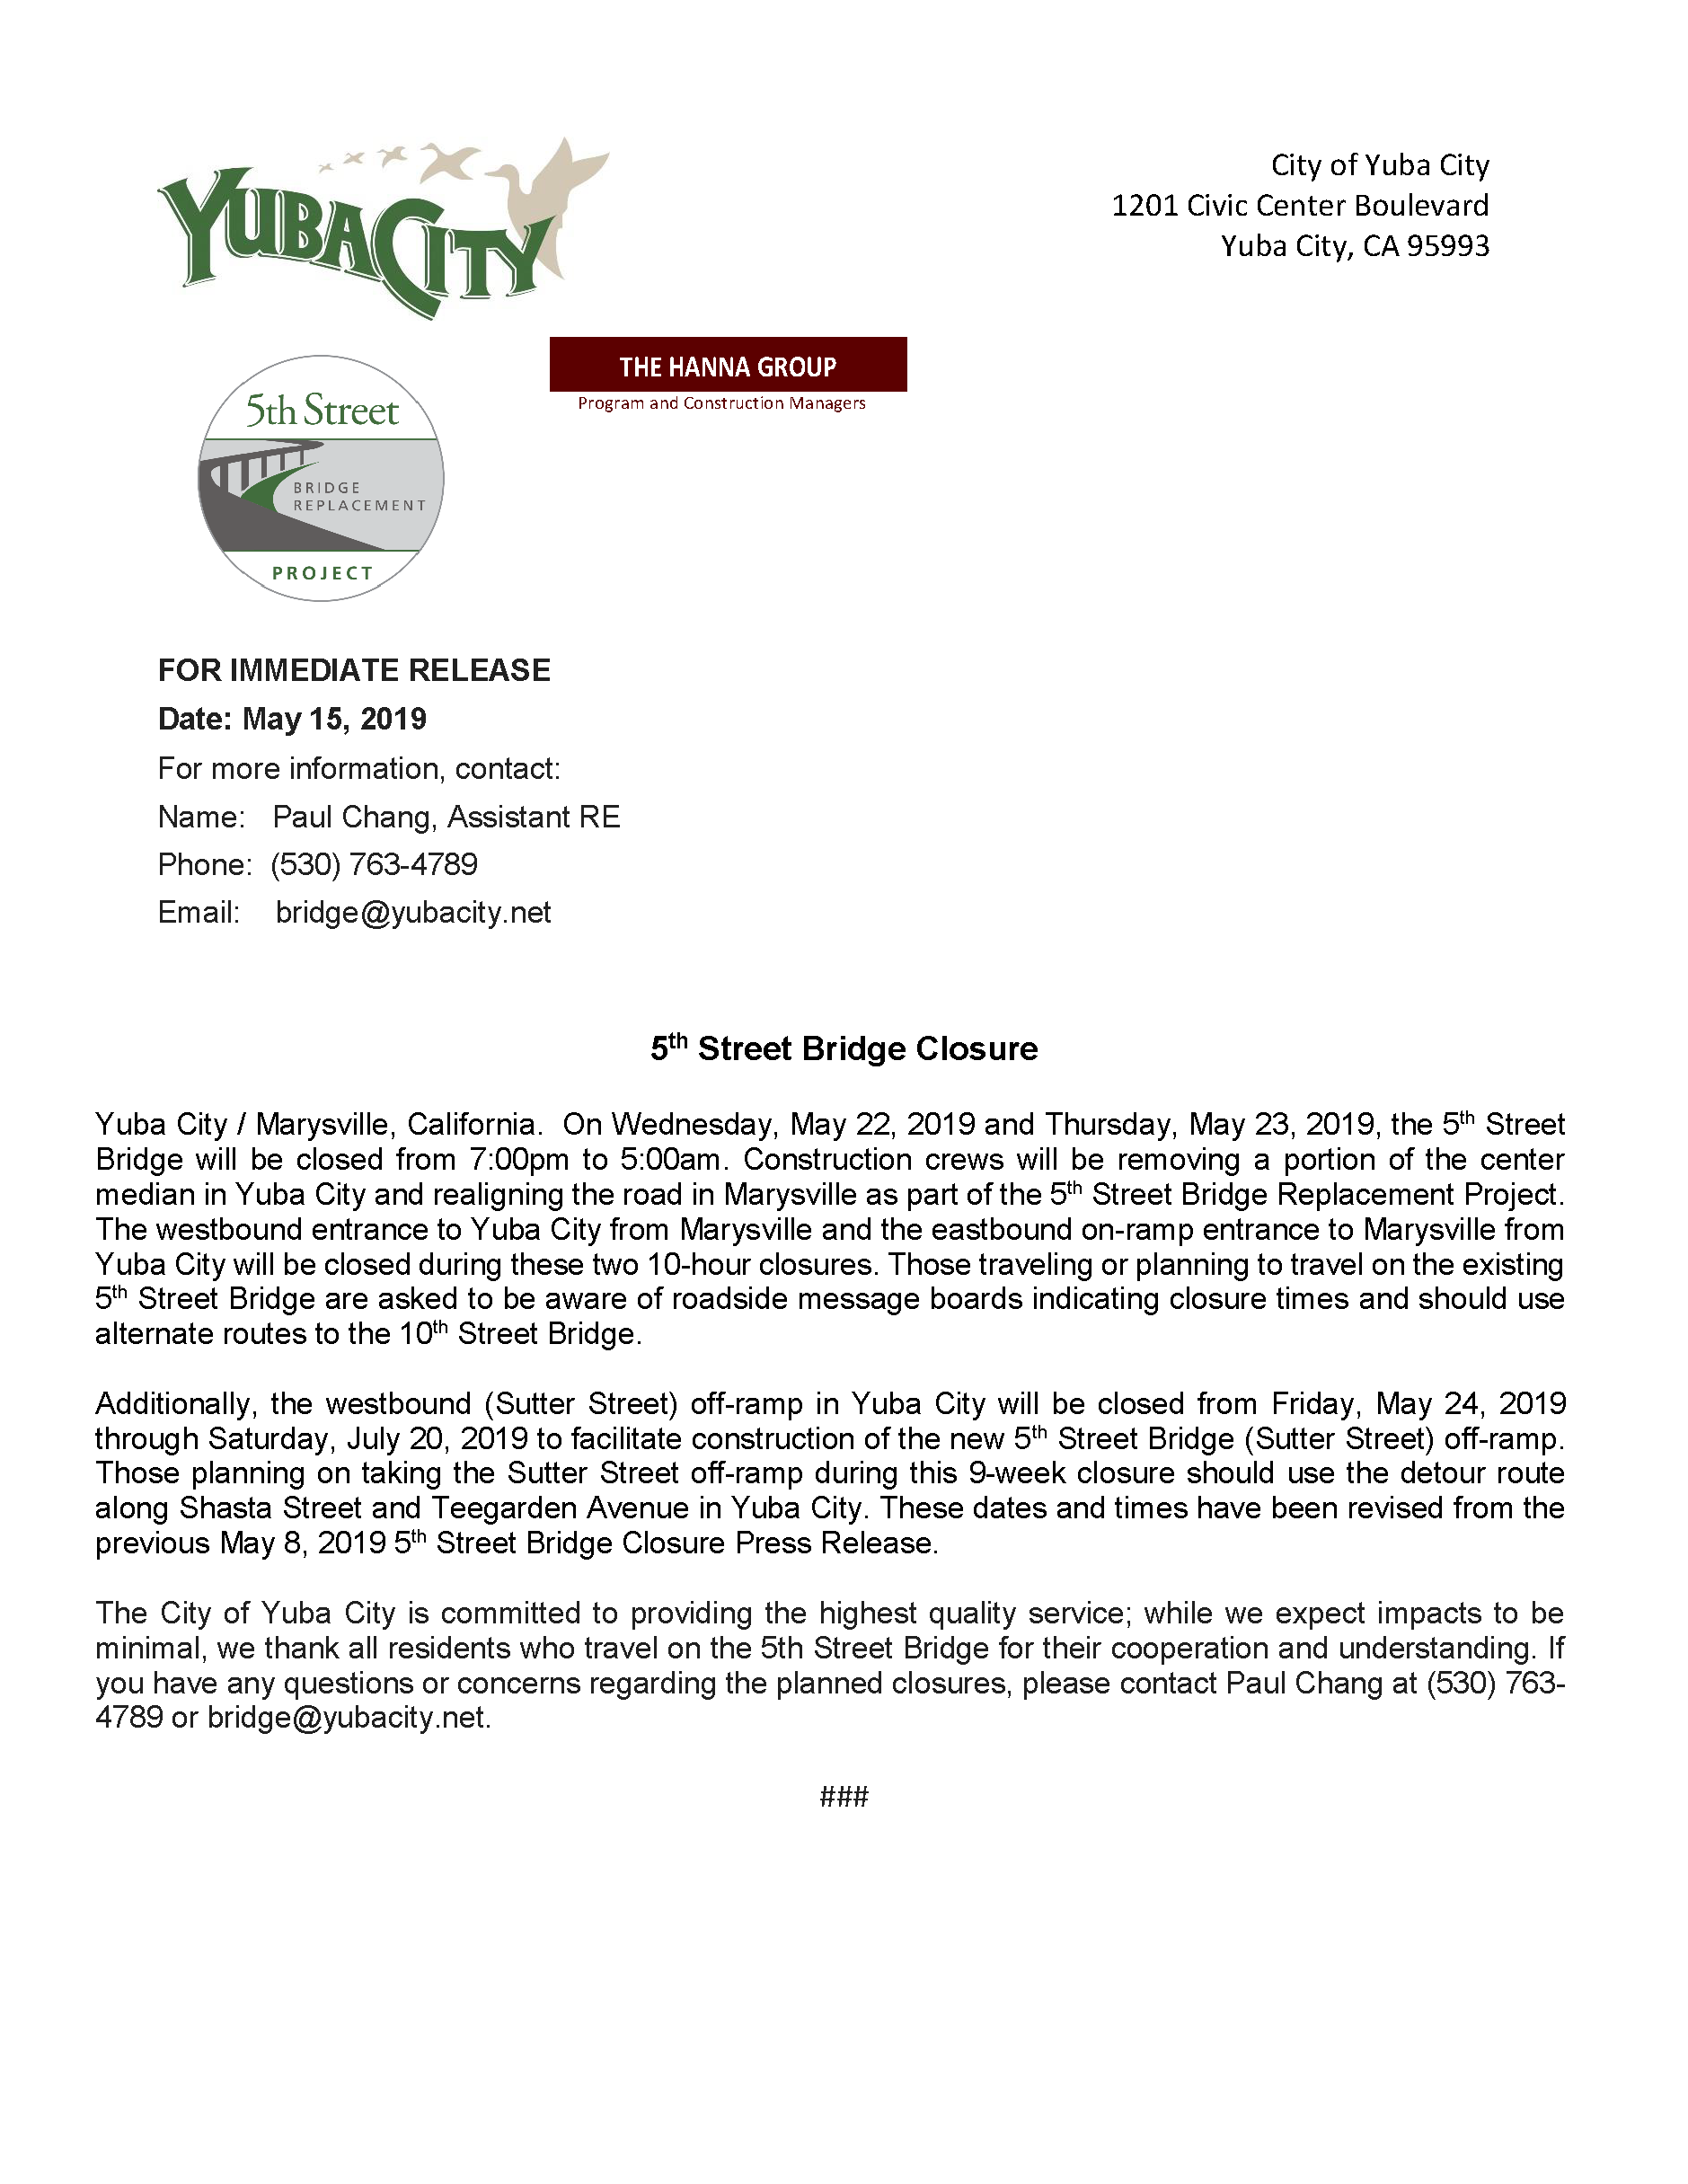 Press Release - 5th St Bridge Closure May 2019 Revised.png